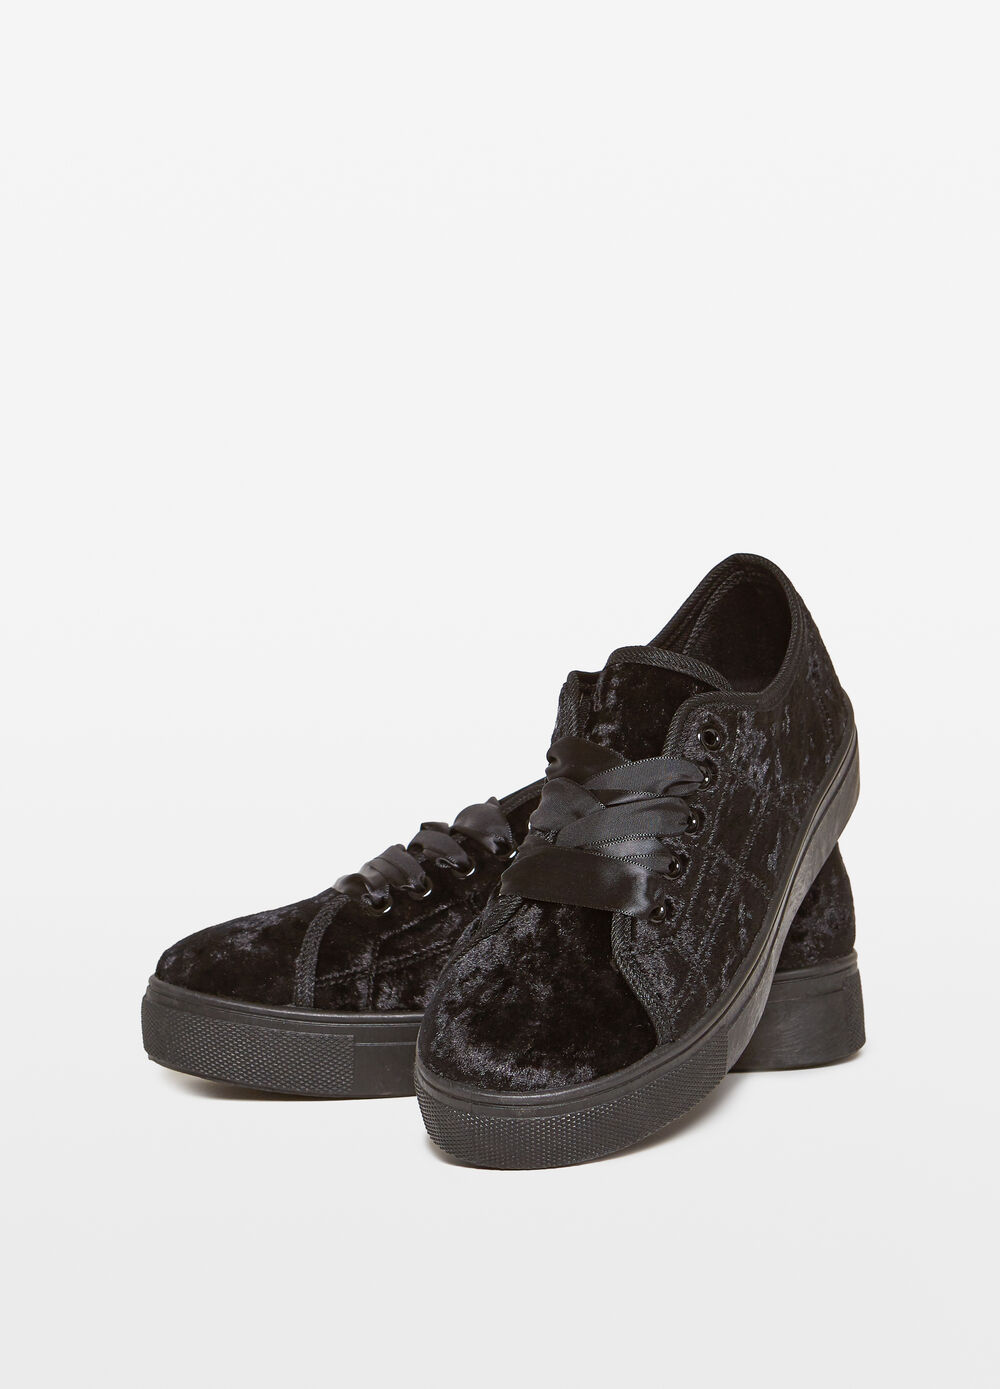 Sneakers in microfibre with low sole